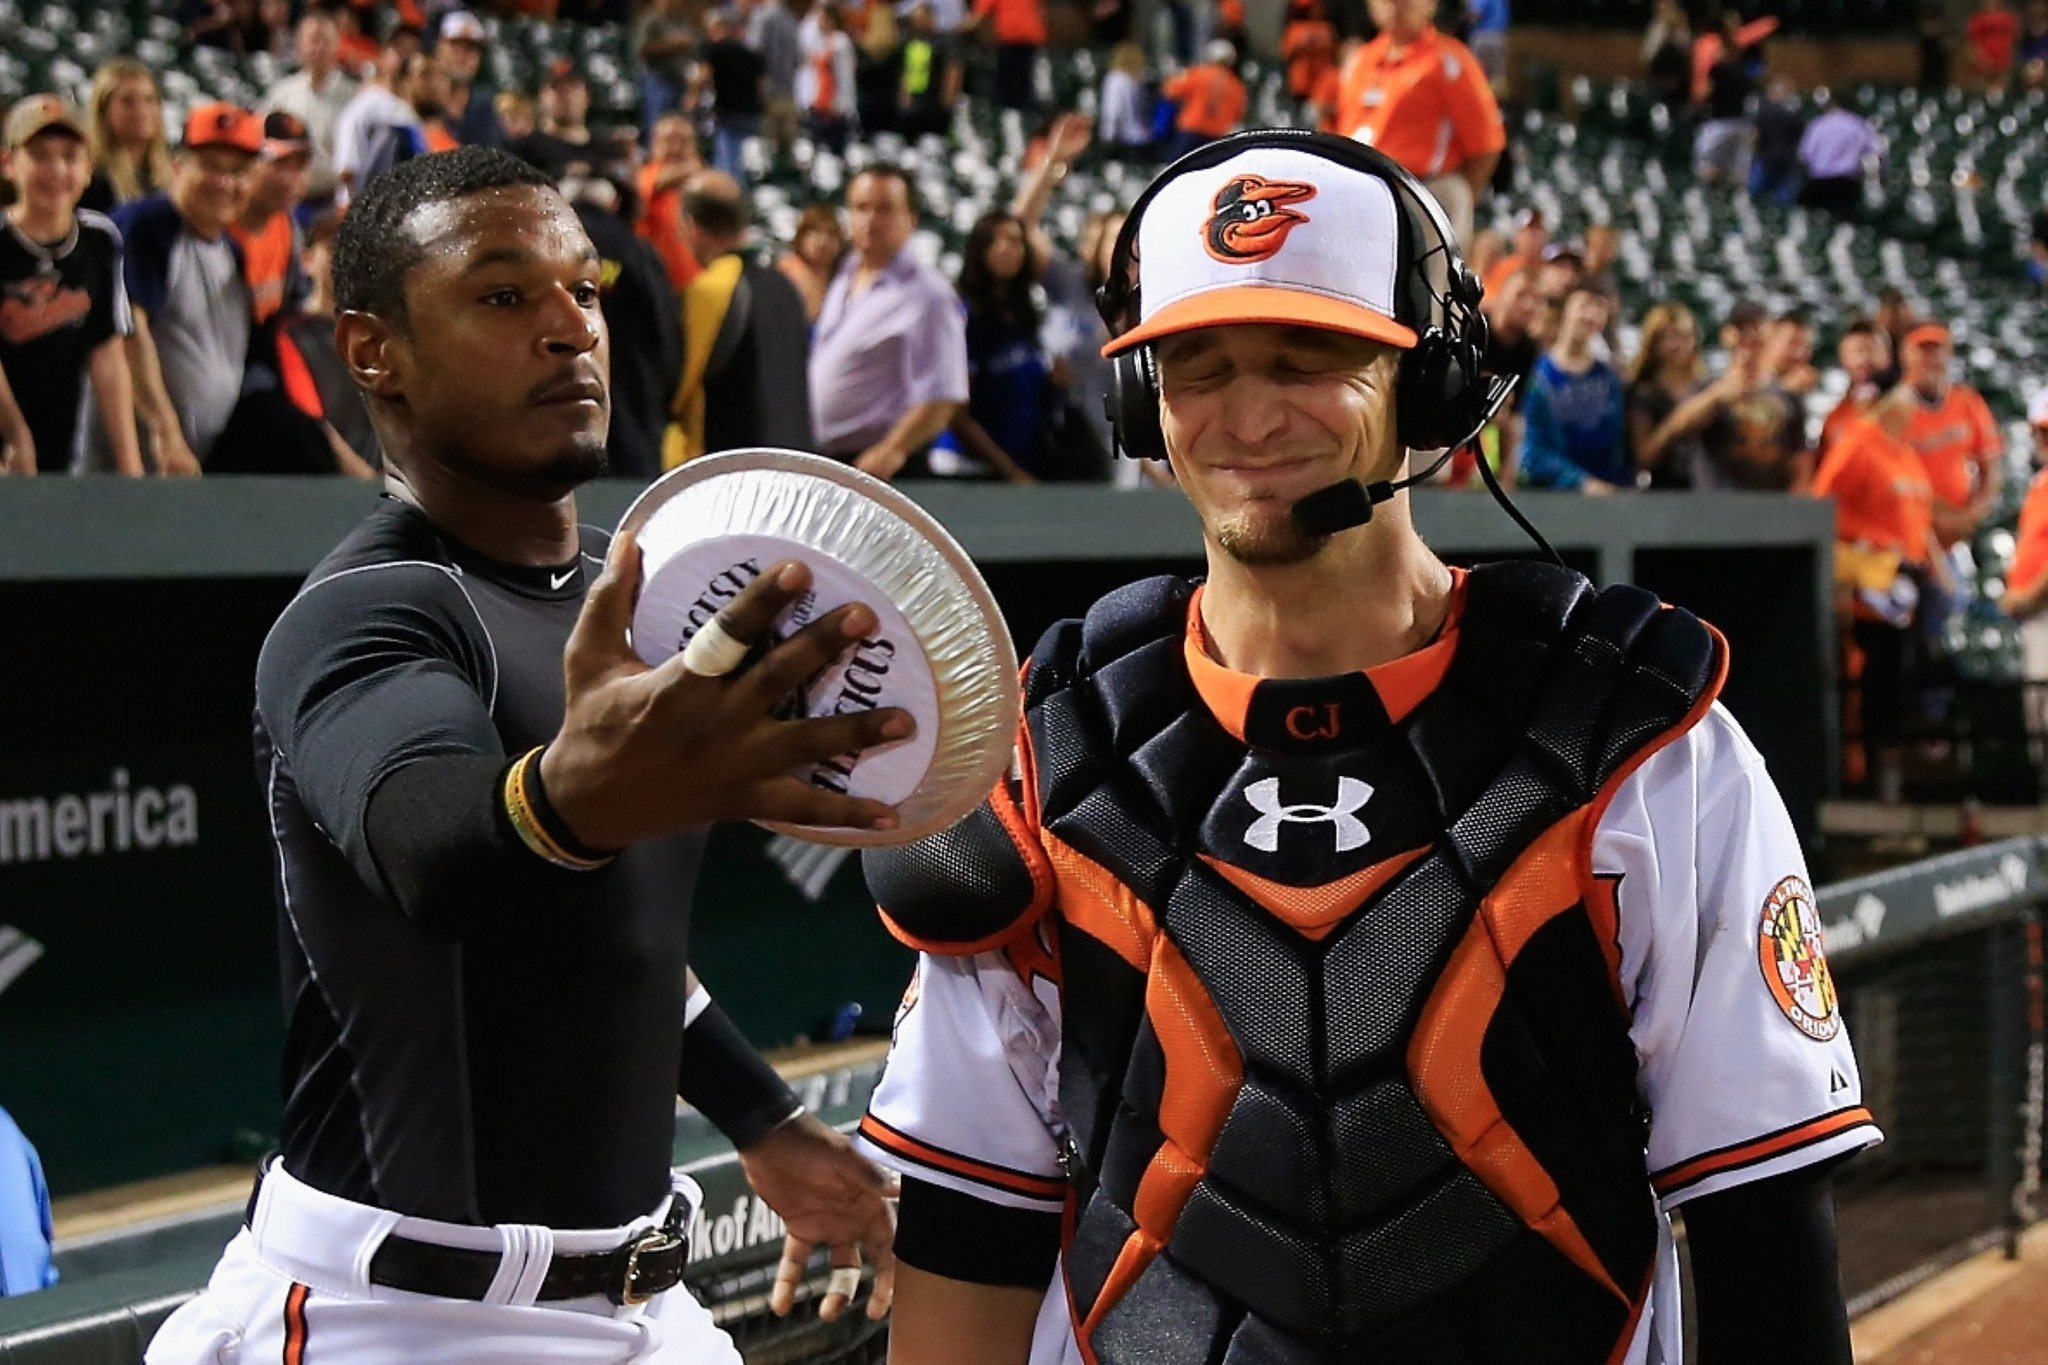 Bal-orioles-exhibition-opener-not-exactly-a-star-studded-affair-20170224